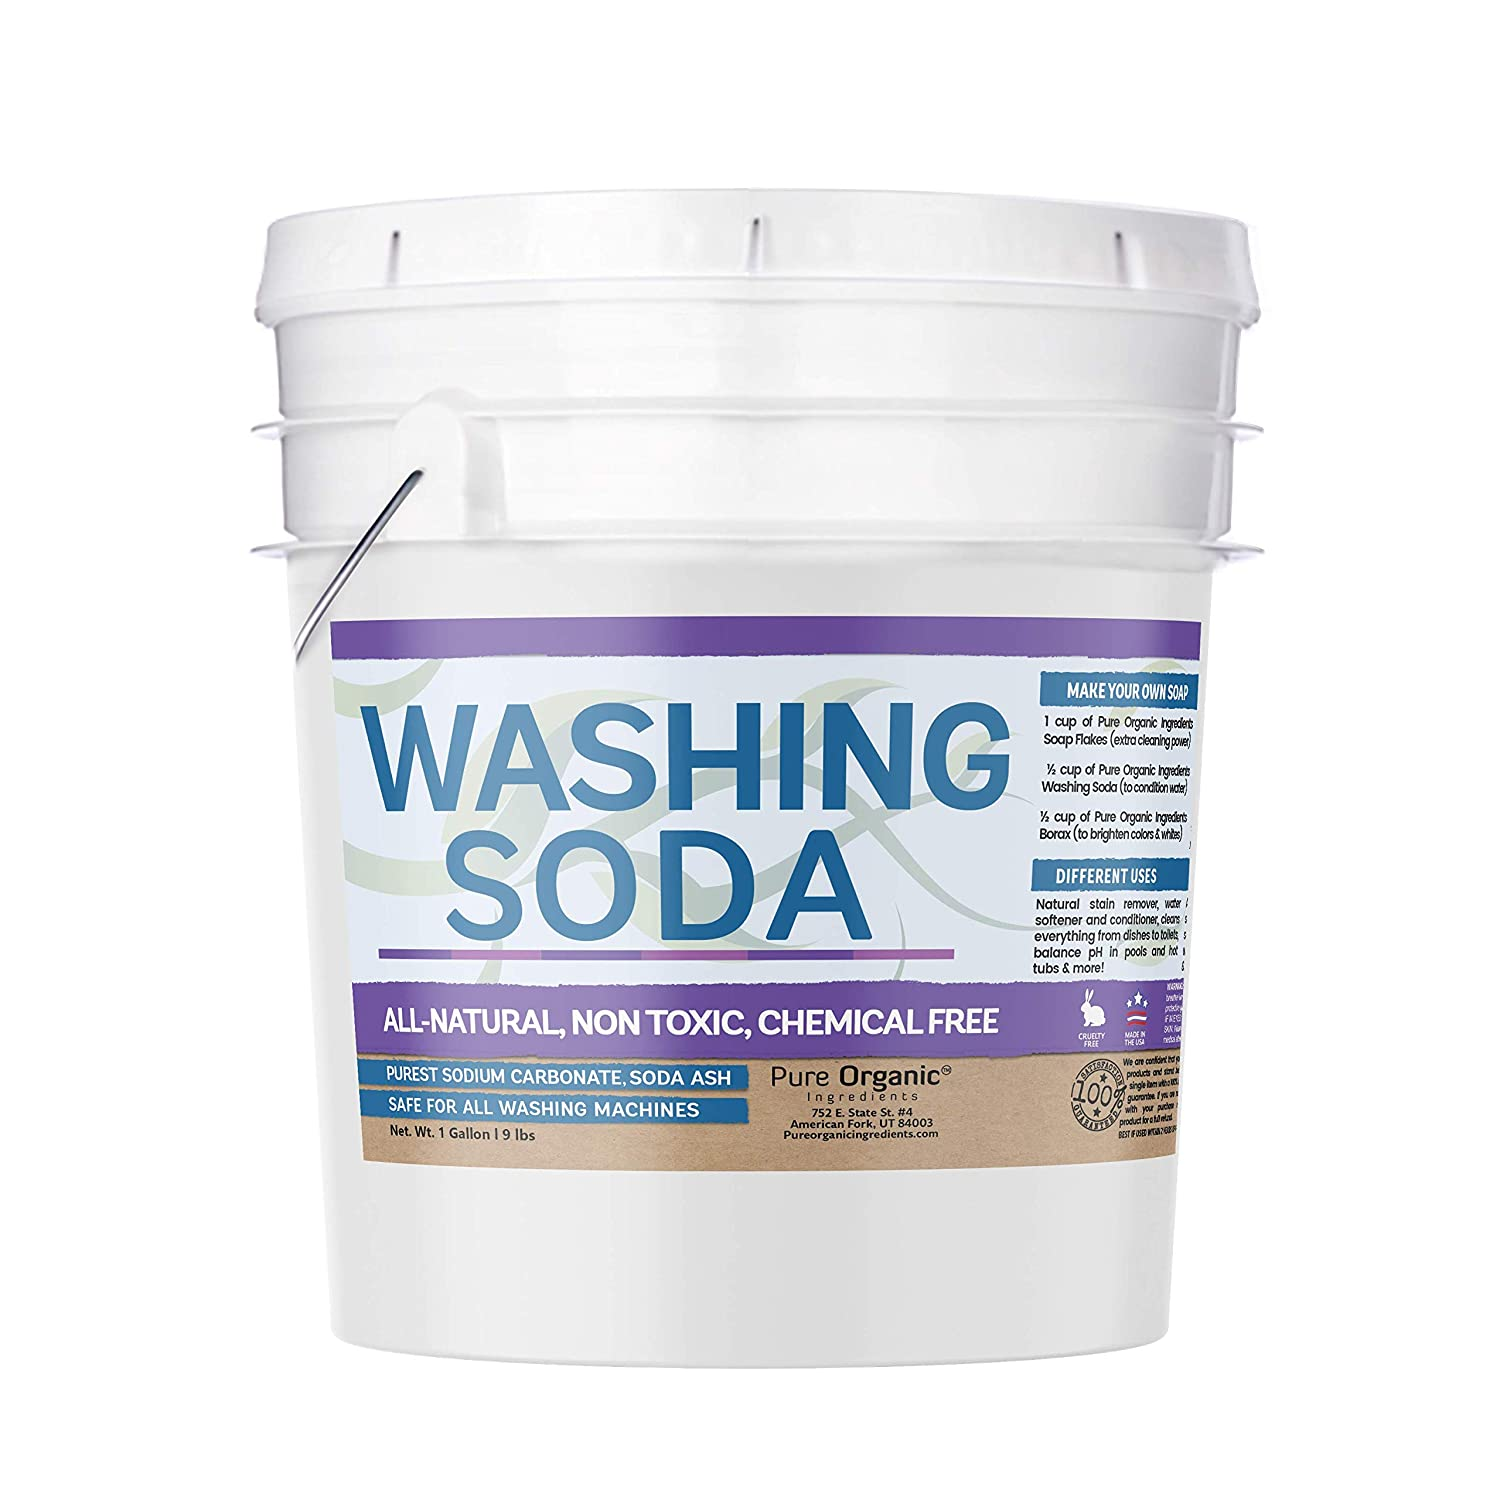 Natural Washing Soda (1 Gallon, 9 lb.) by Pure Organic Ingredients, Resealable 1 Gallon Sodium Carbonate, Soda Ash, Stain Remover, Water Softener, Multi-Purpose Cleaner (Also in 5 Gallon)